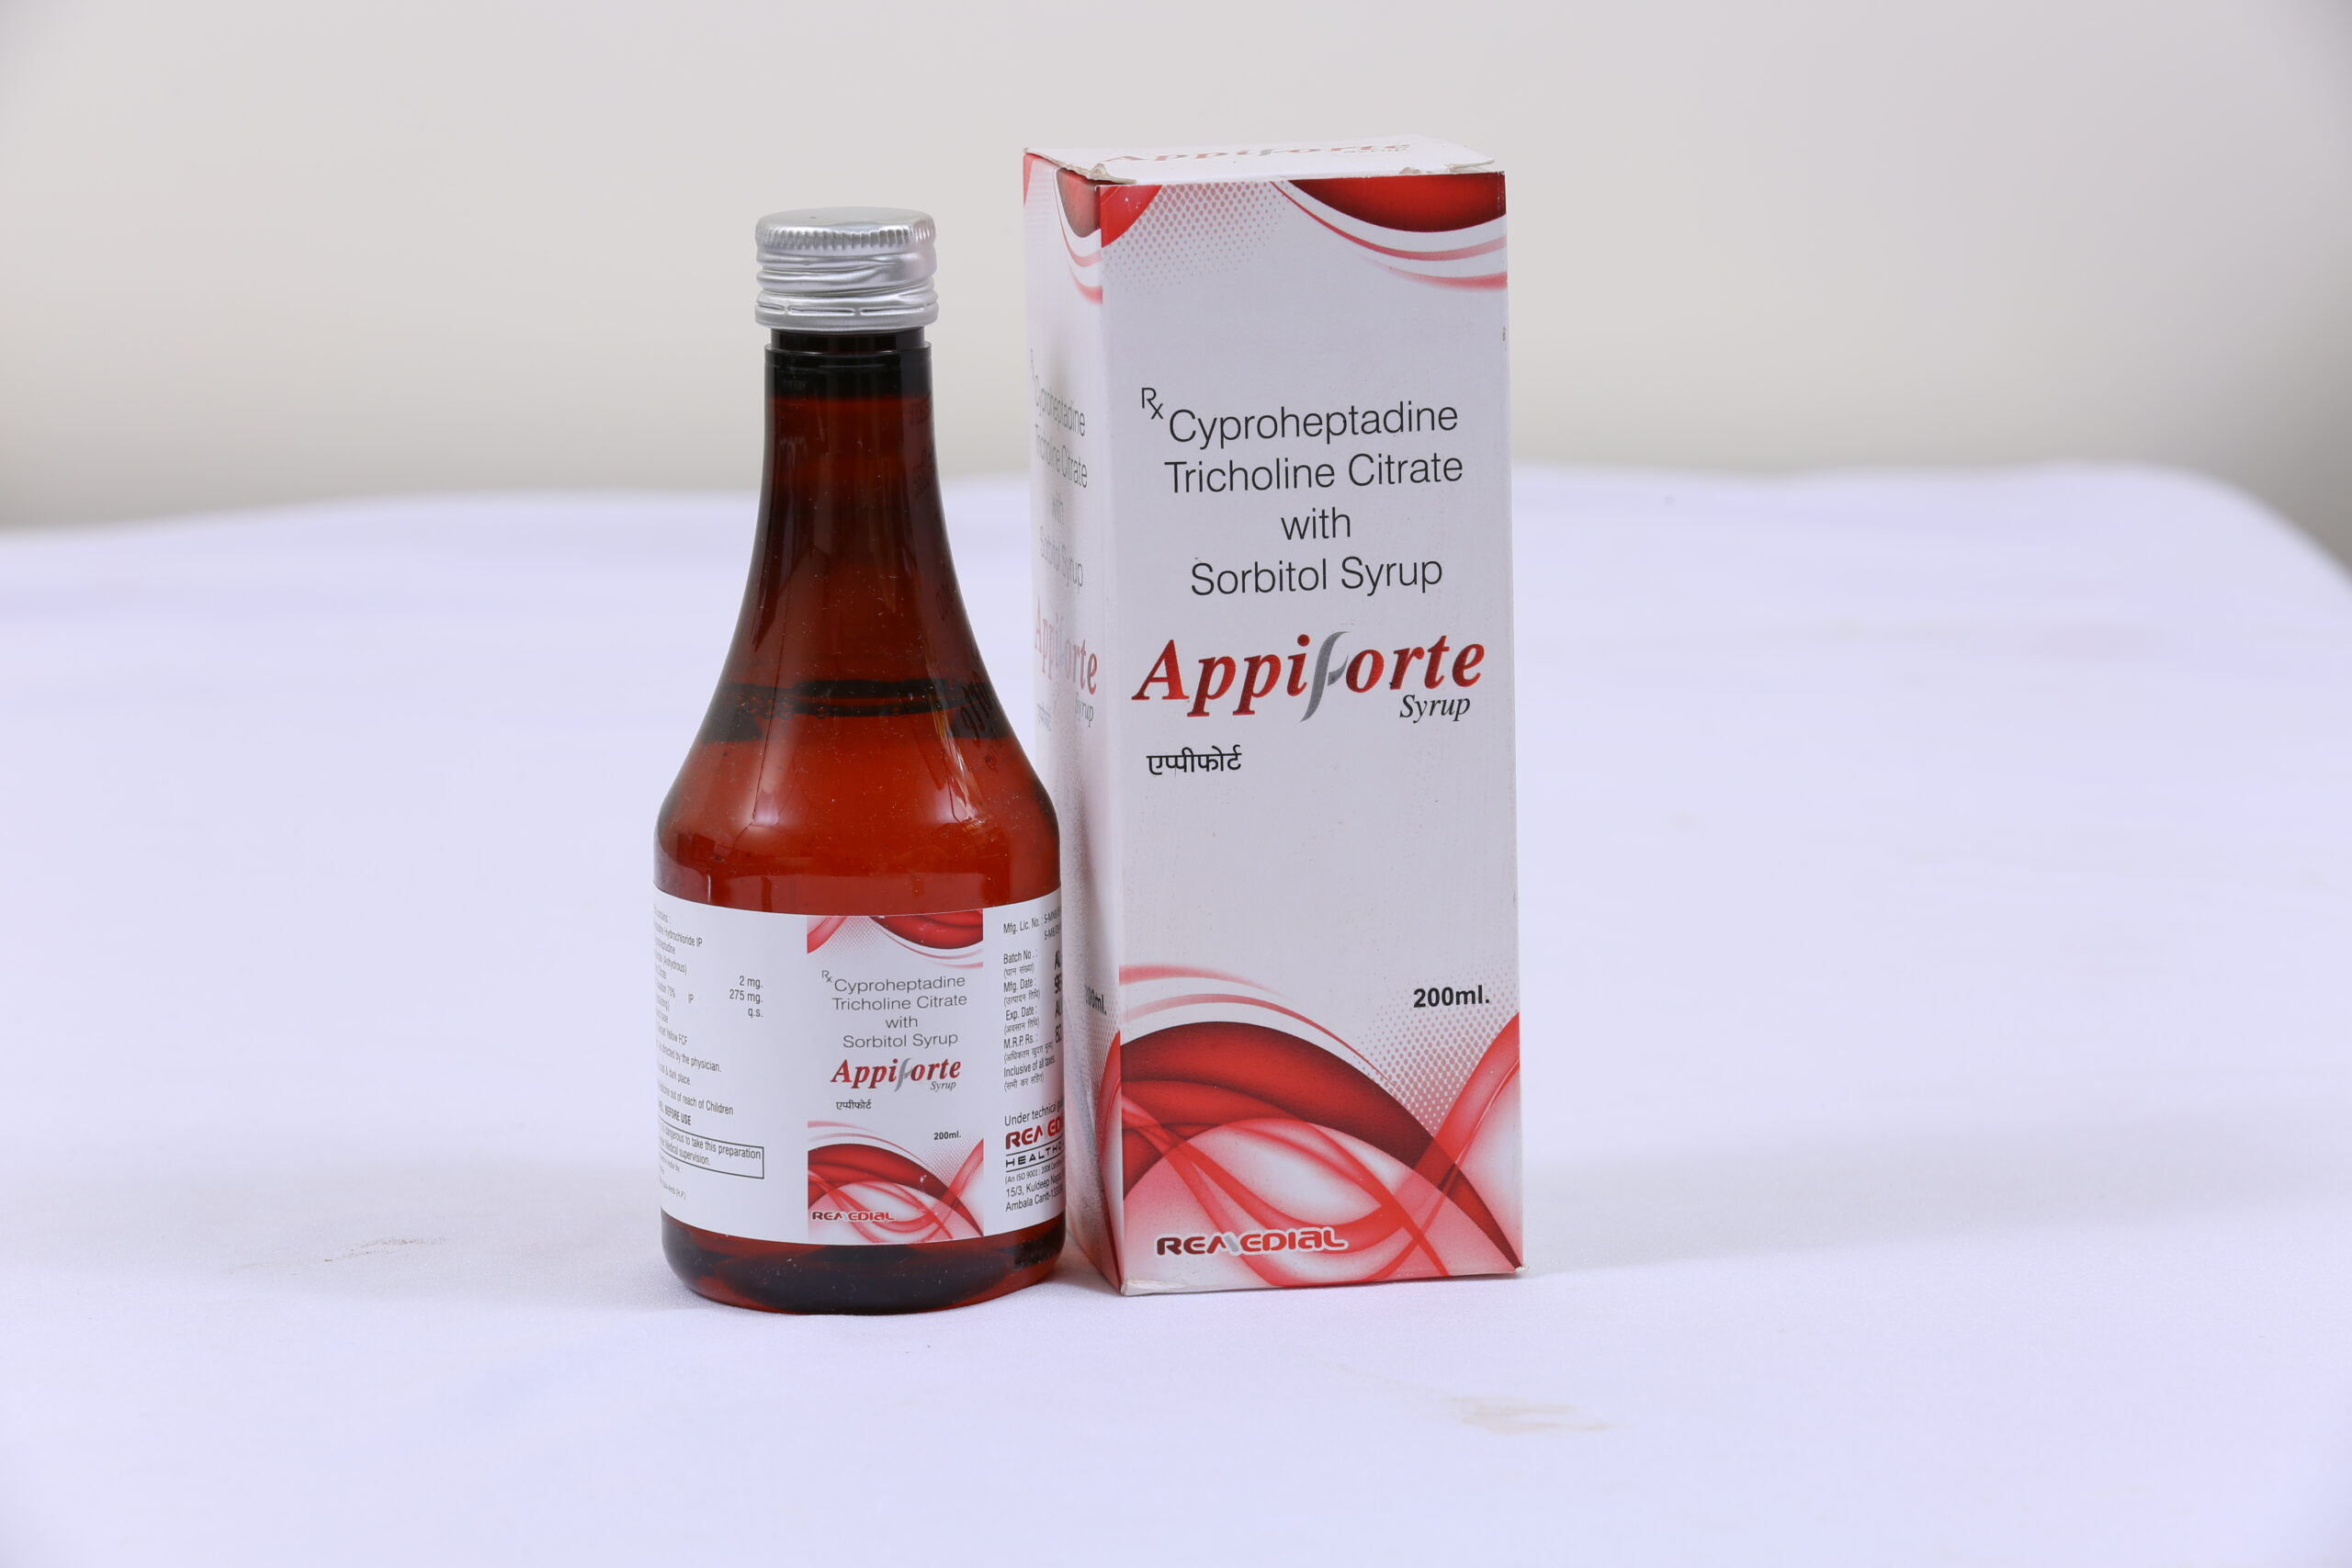 APPIFORTE (Cyproheptadine HCl + Tricoline Citrate + Sorbitol solu)